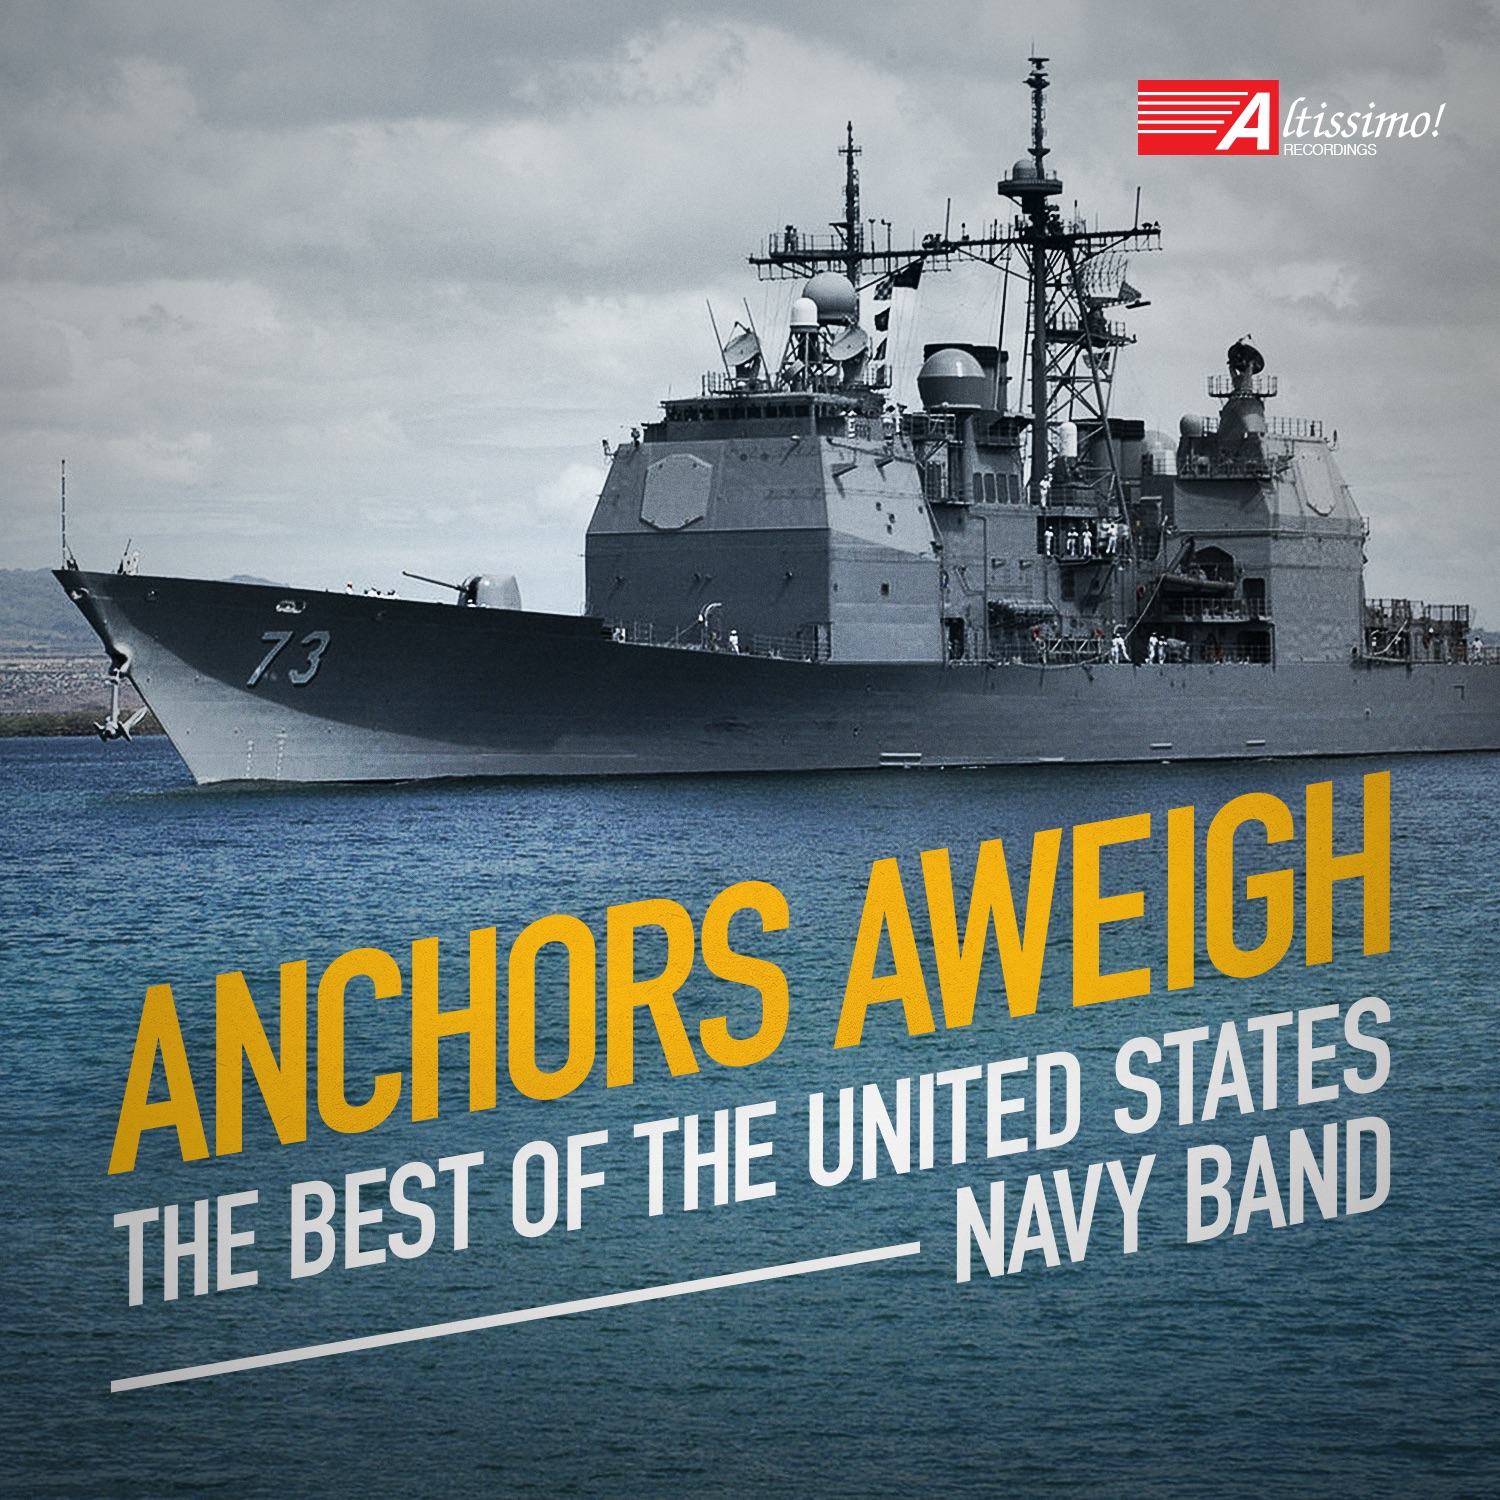 Anchors Aweigh: The Best of the United States Navy Band